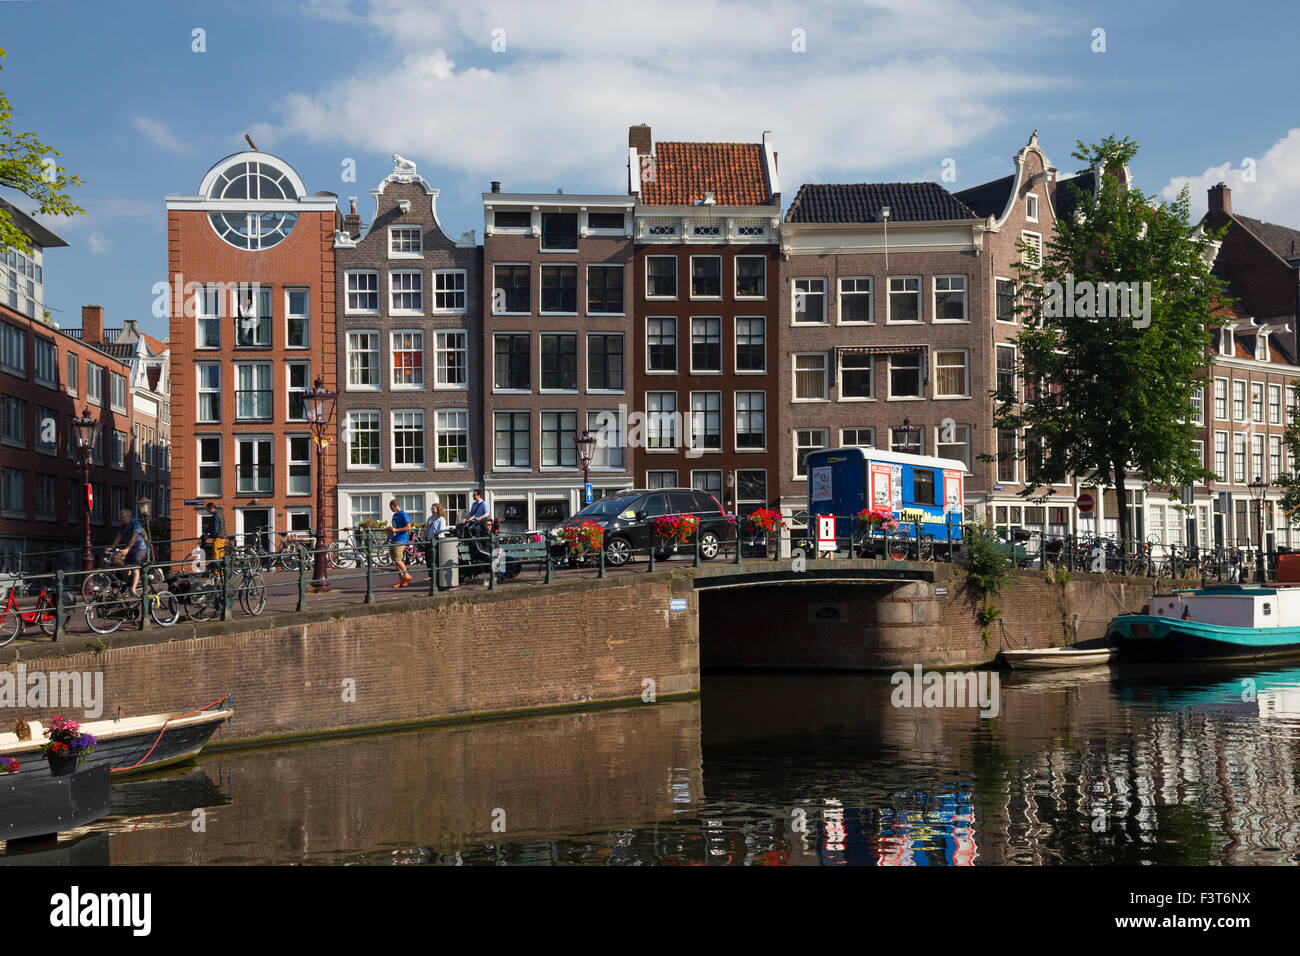 Historic houses on the corner of Bloemgracht and Prinsengracht Amsterdam Netherlands - Stock Image